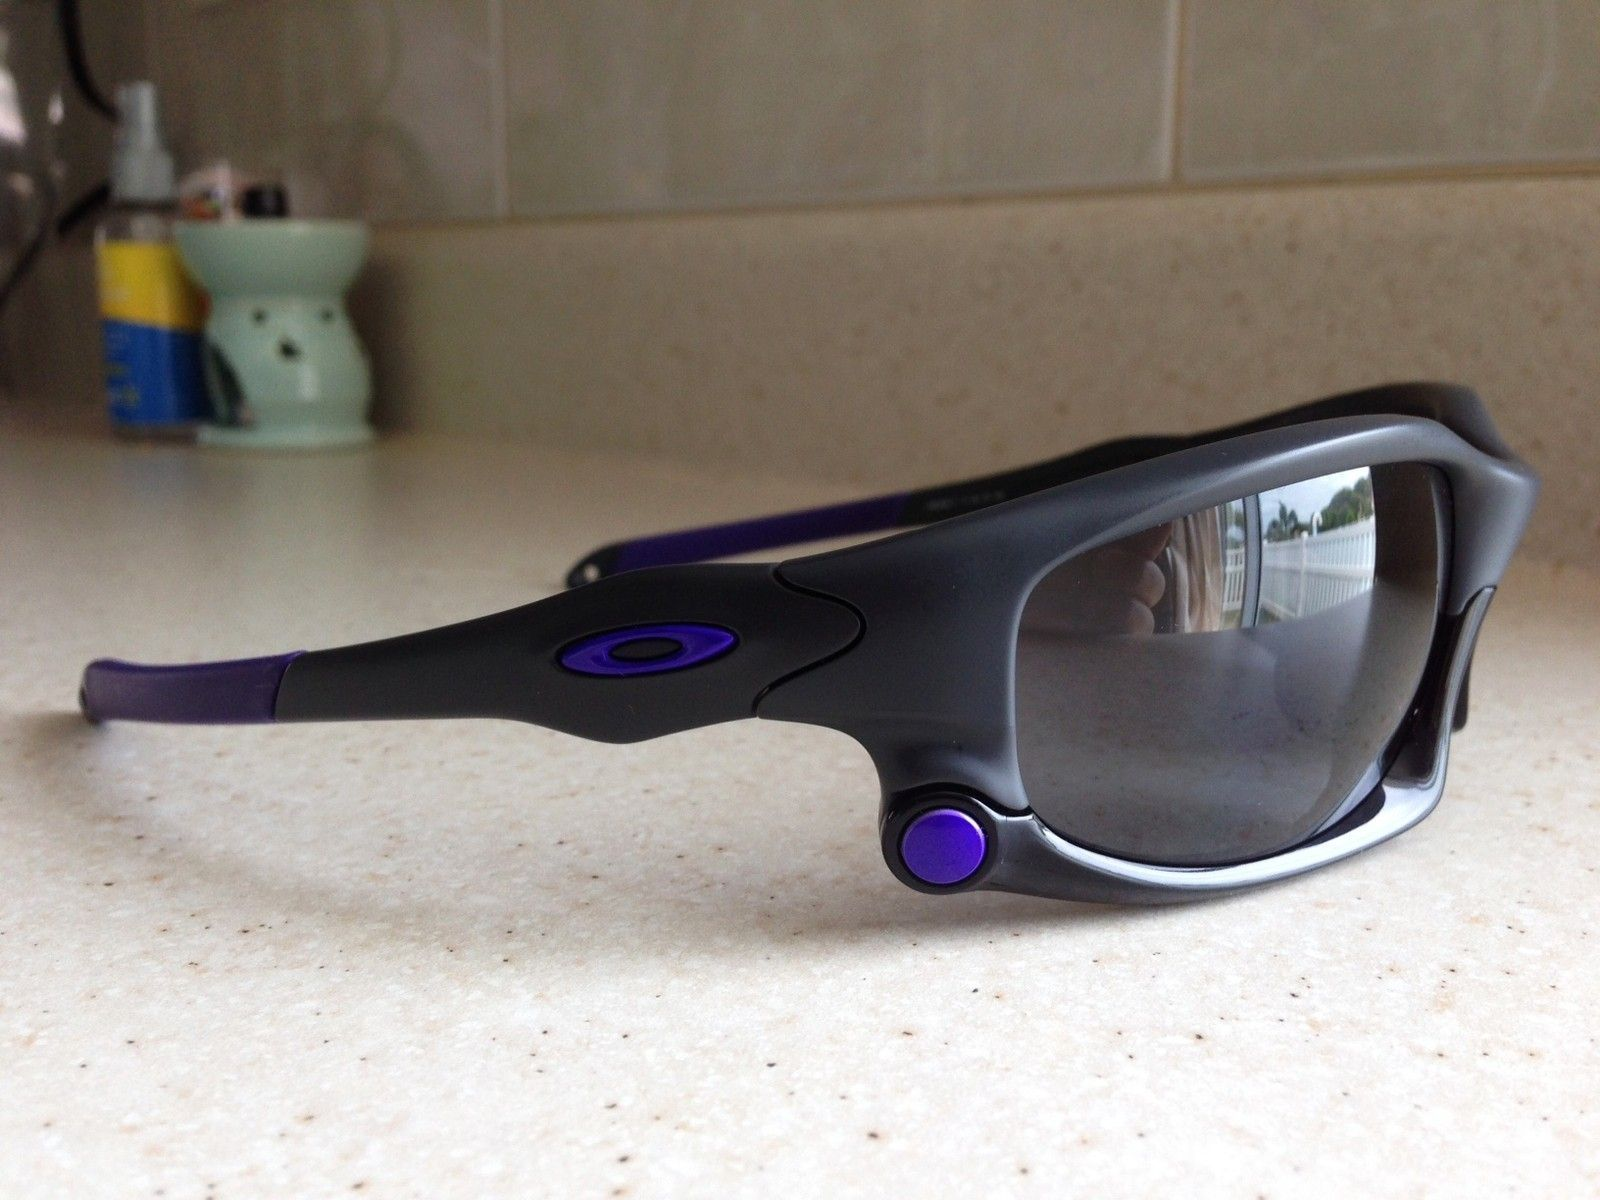 NEW OAKLEY INFINITE HERO SPLIT JACKET *REDUCED PRICE* - IMG_5655.JPG